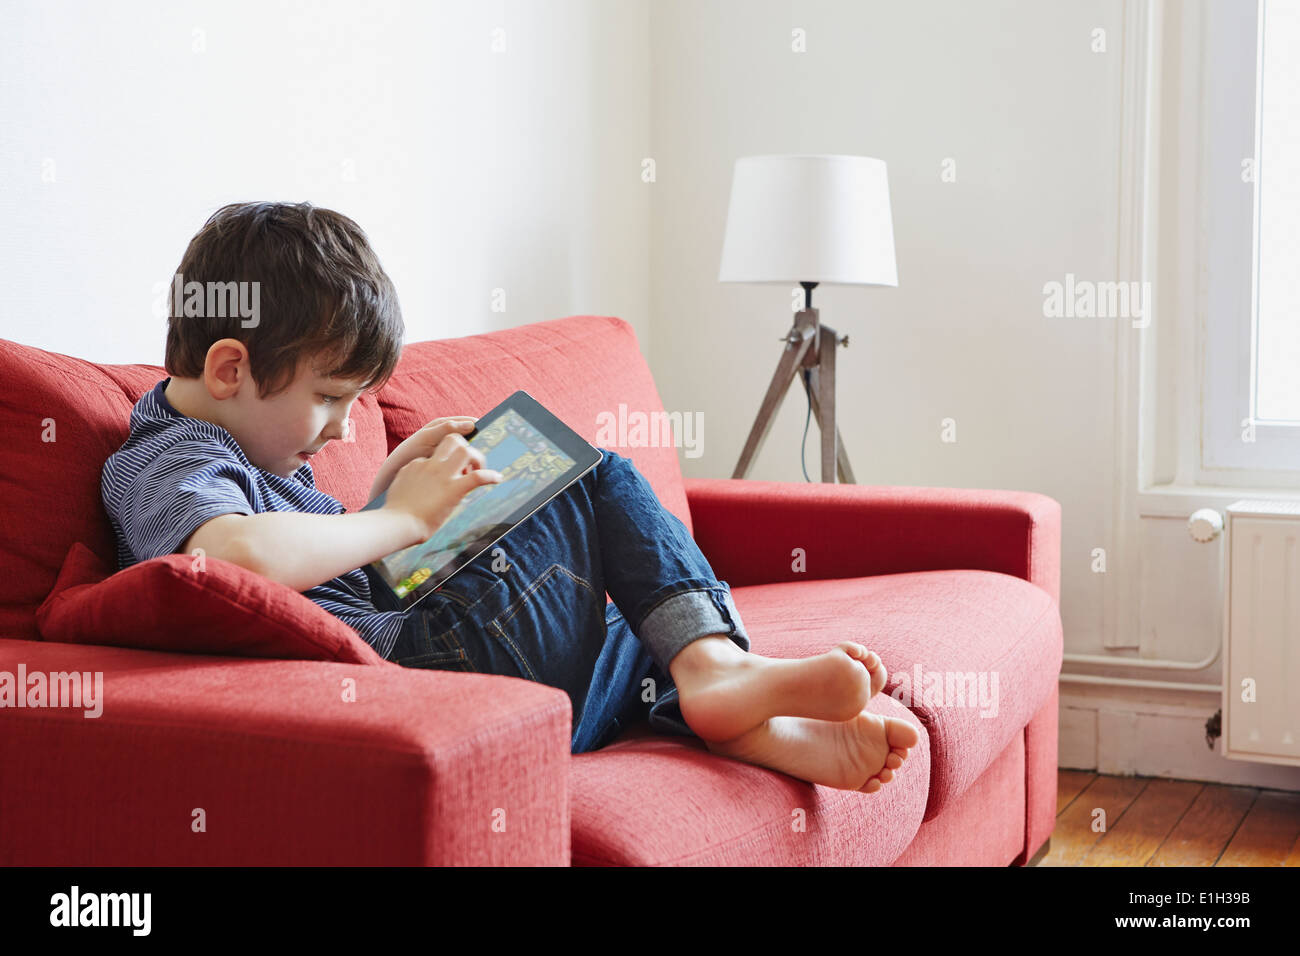 Boy using digital tablet - Stock Image